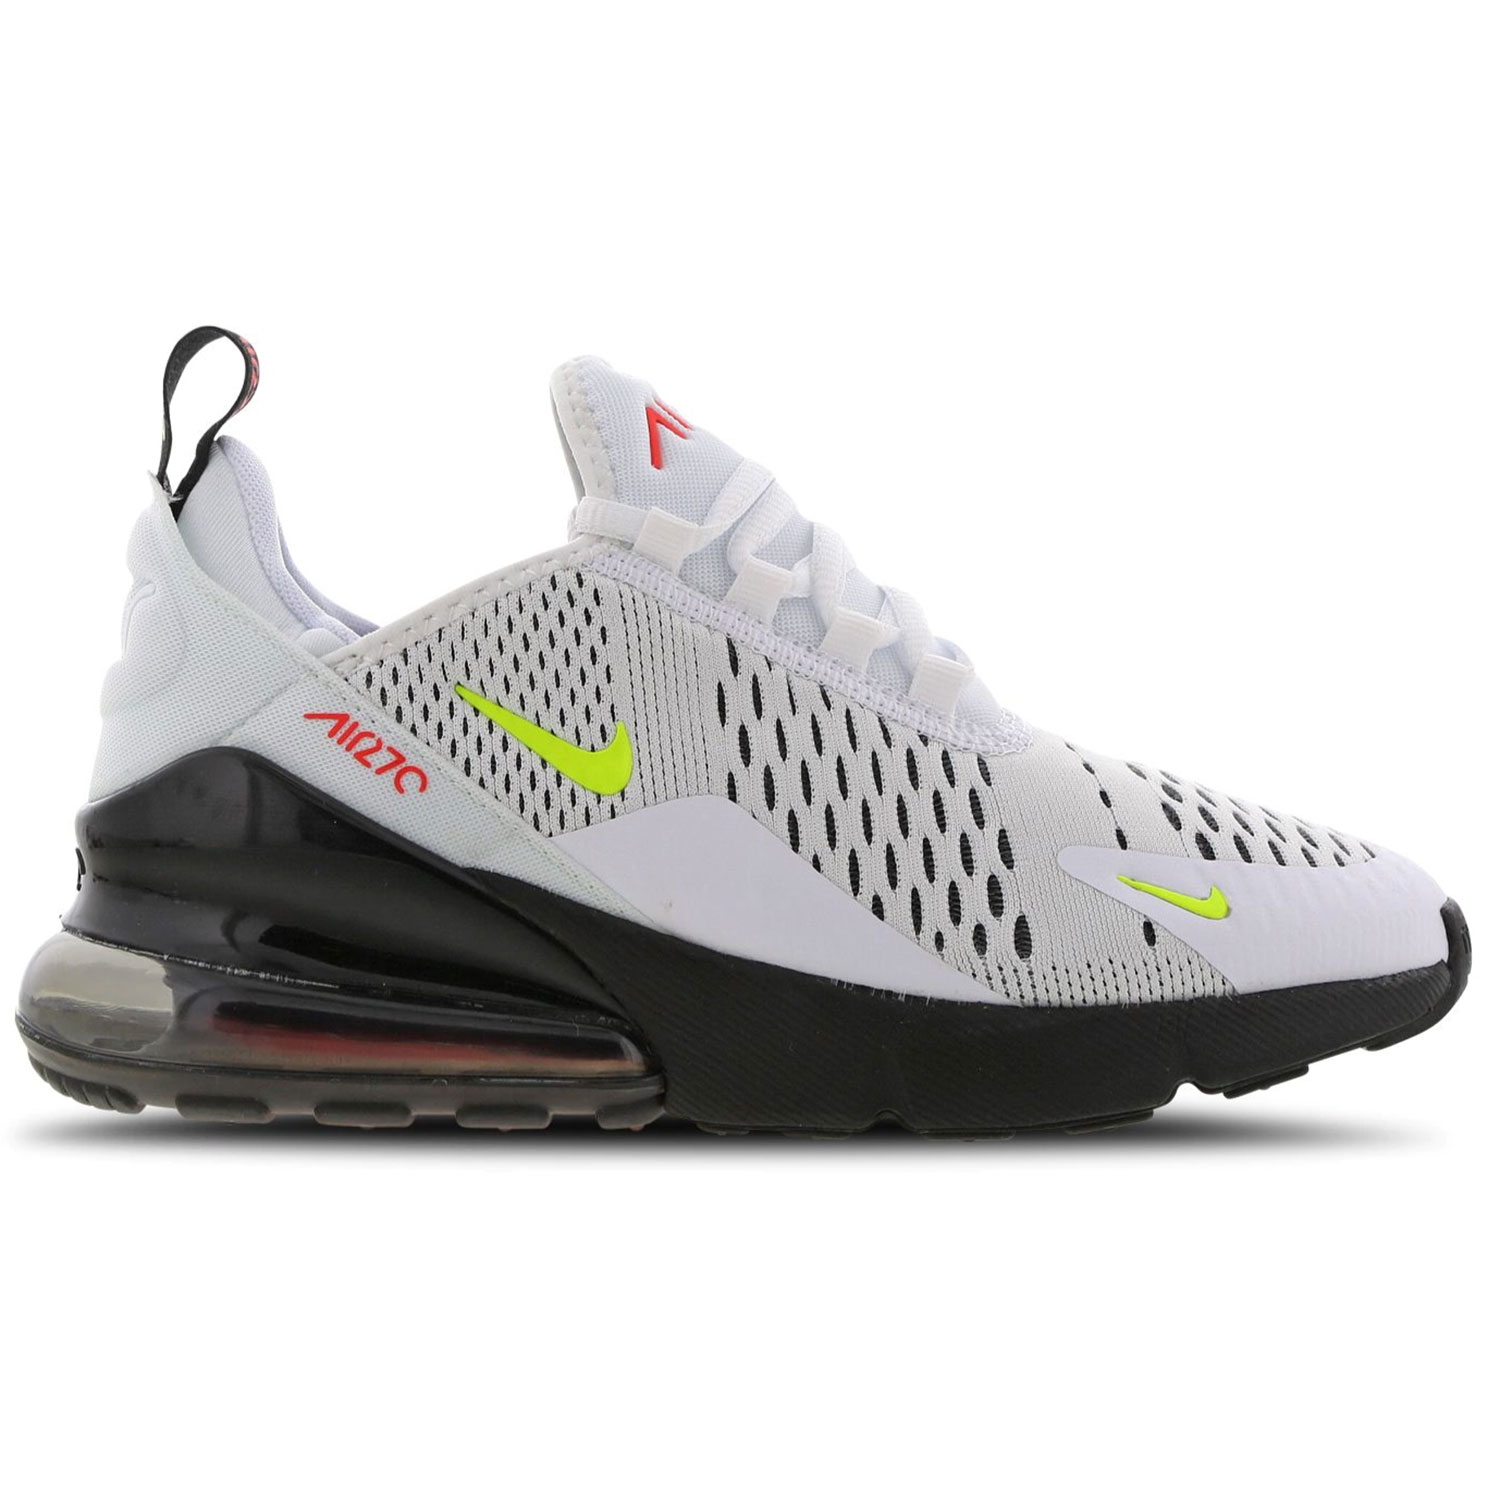 delicate colors outlet boutique ever popular Nike Air Max 270 GS Kinder Sneaker weiß schwarz gelb CJ4581 100